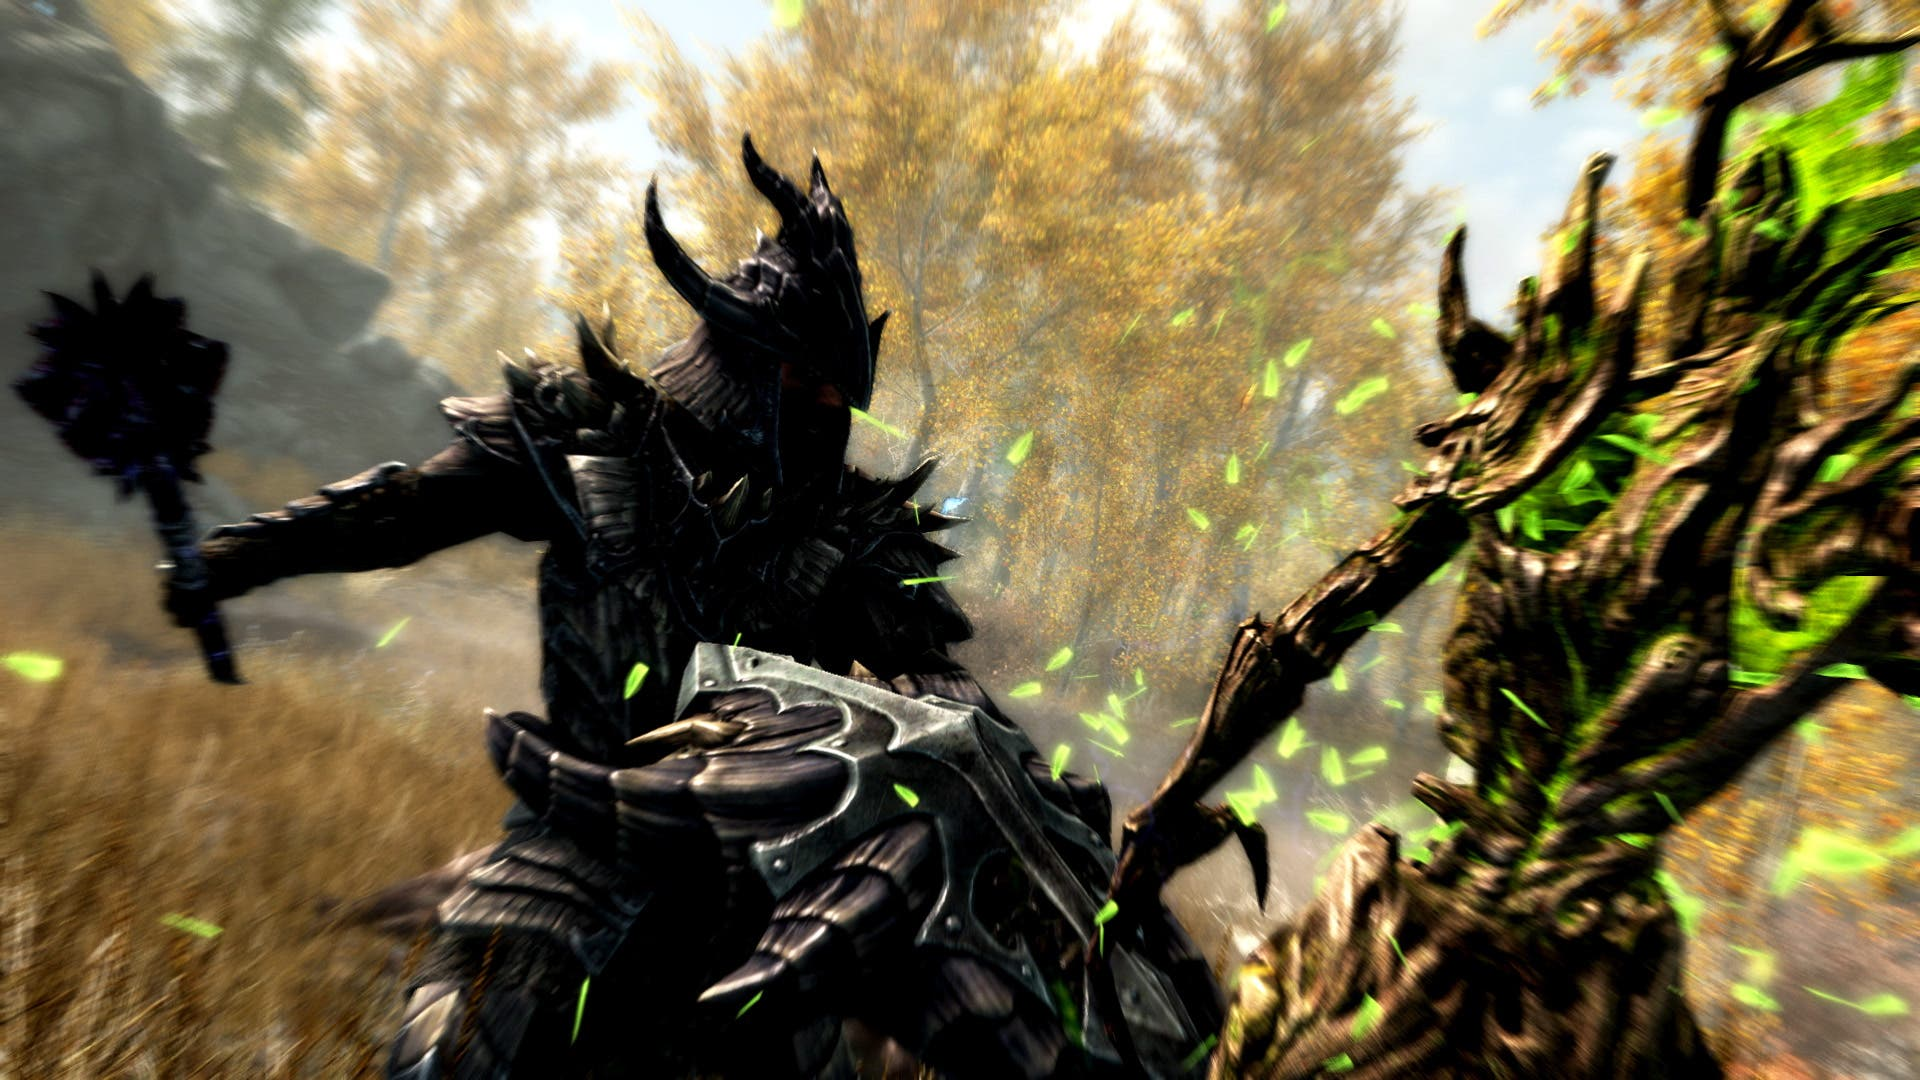 skyrimse-review3